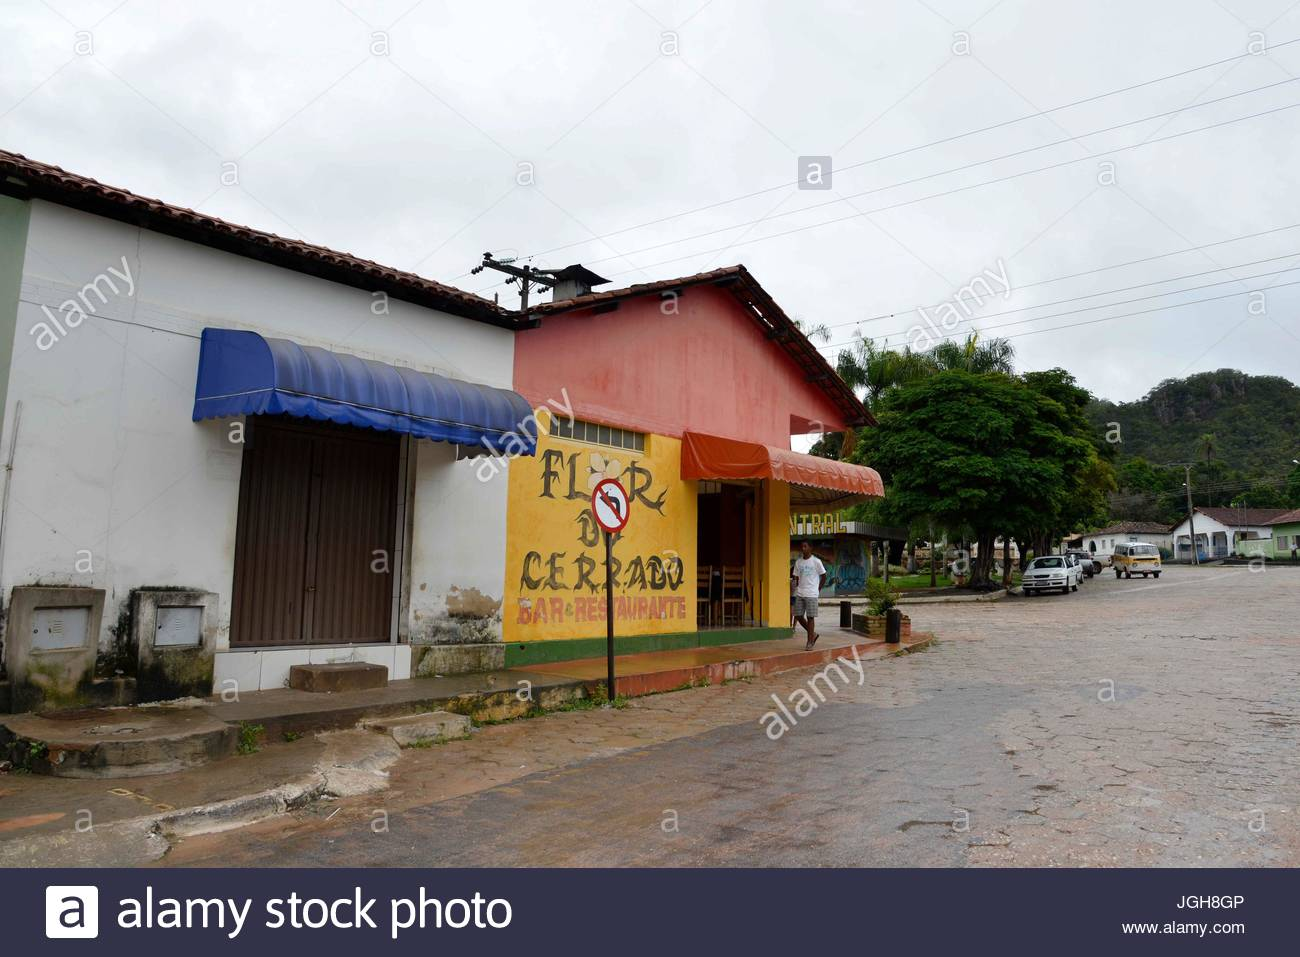 The city center after rain, Cavalcante, Goias, Brazil.03.2015 - Stock Image